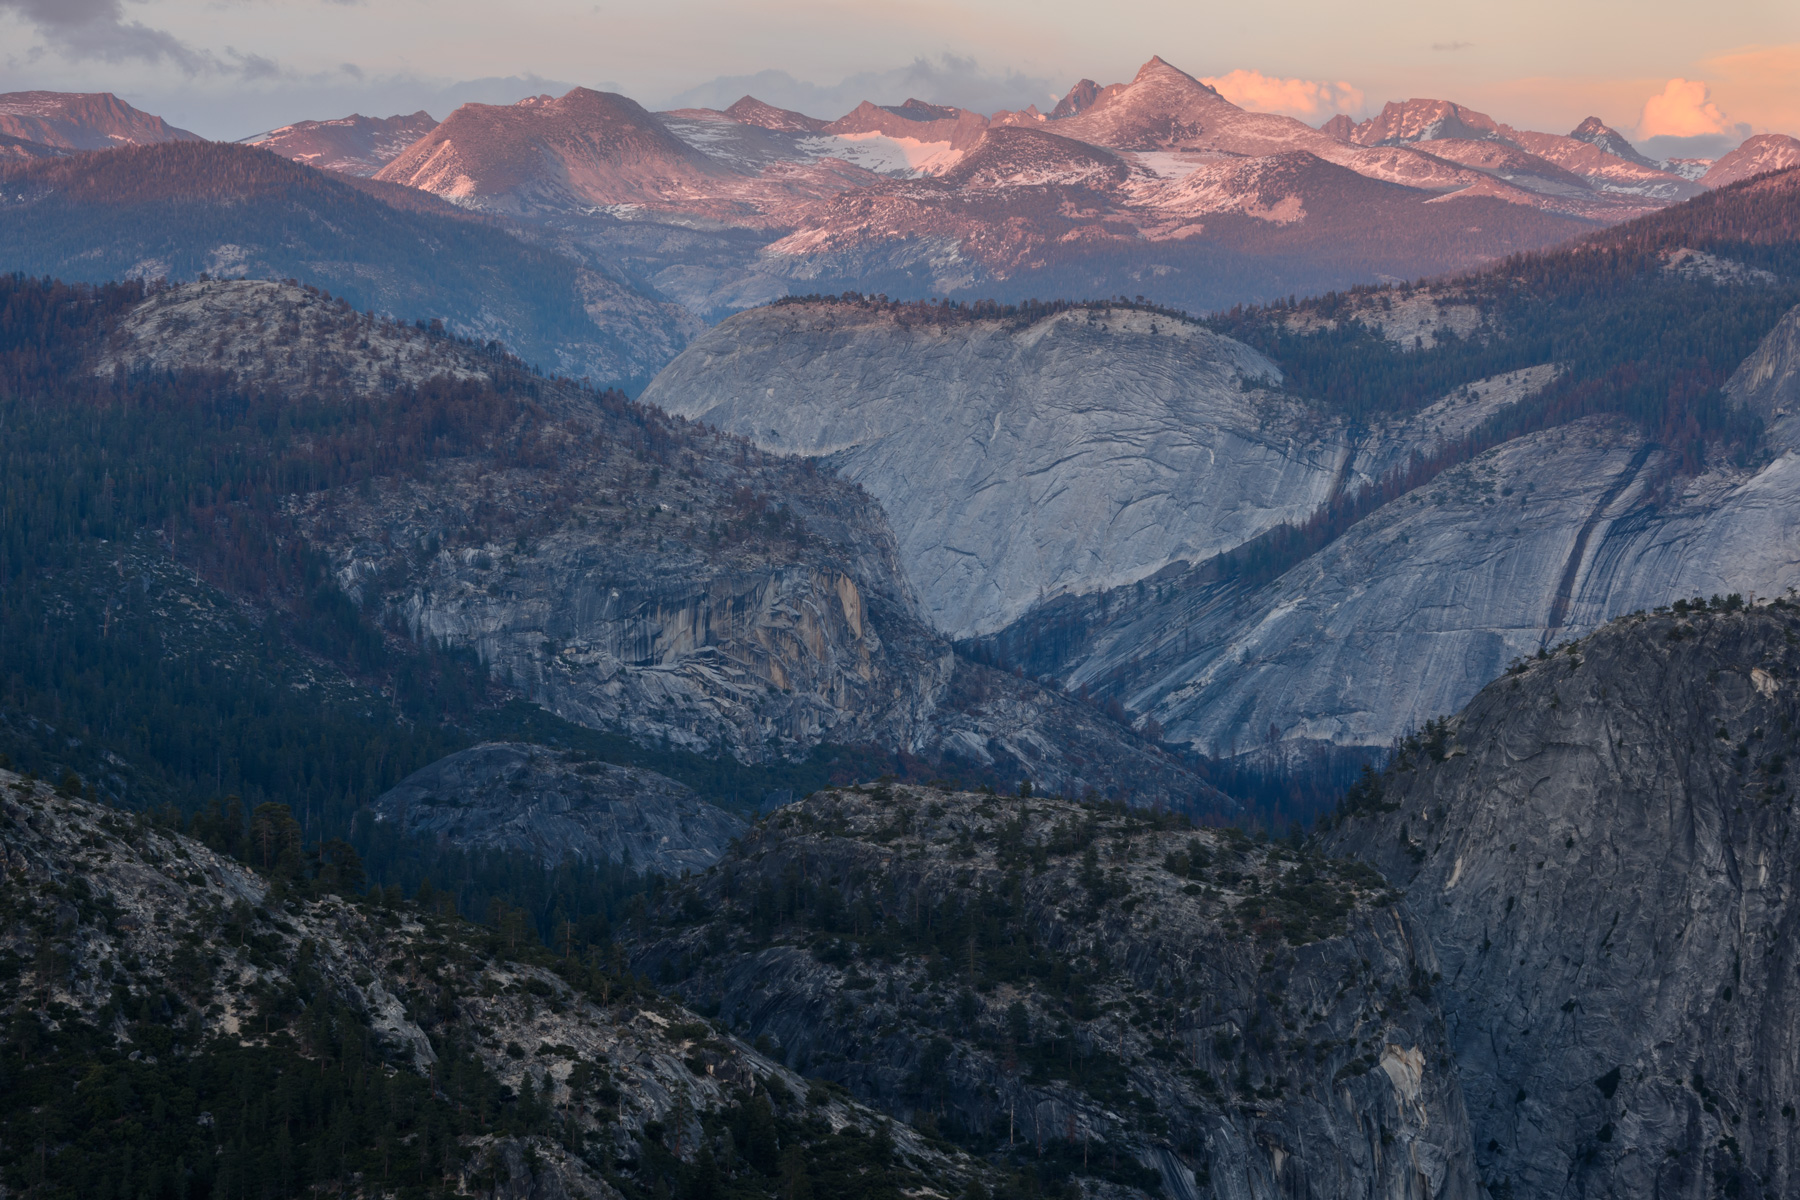 Yosemite_Overview.jpg